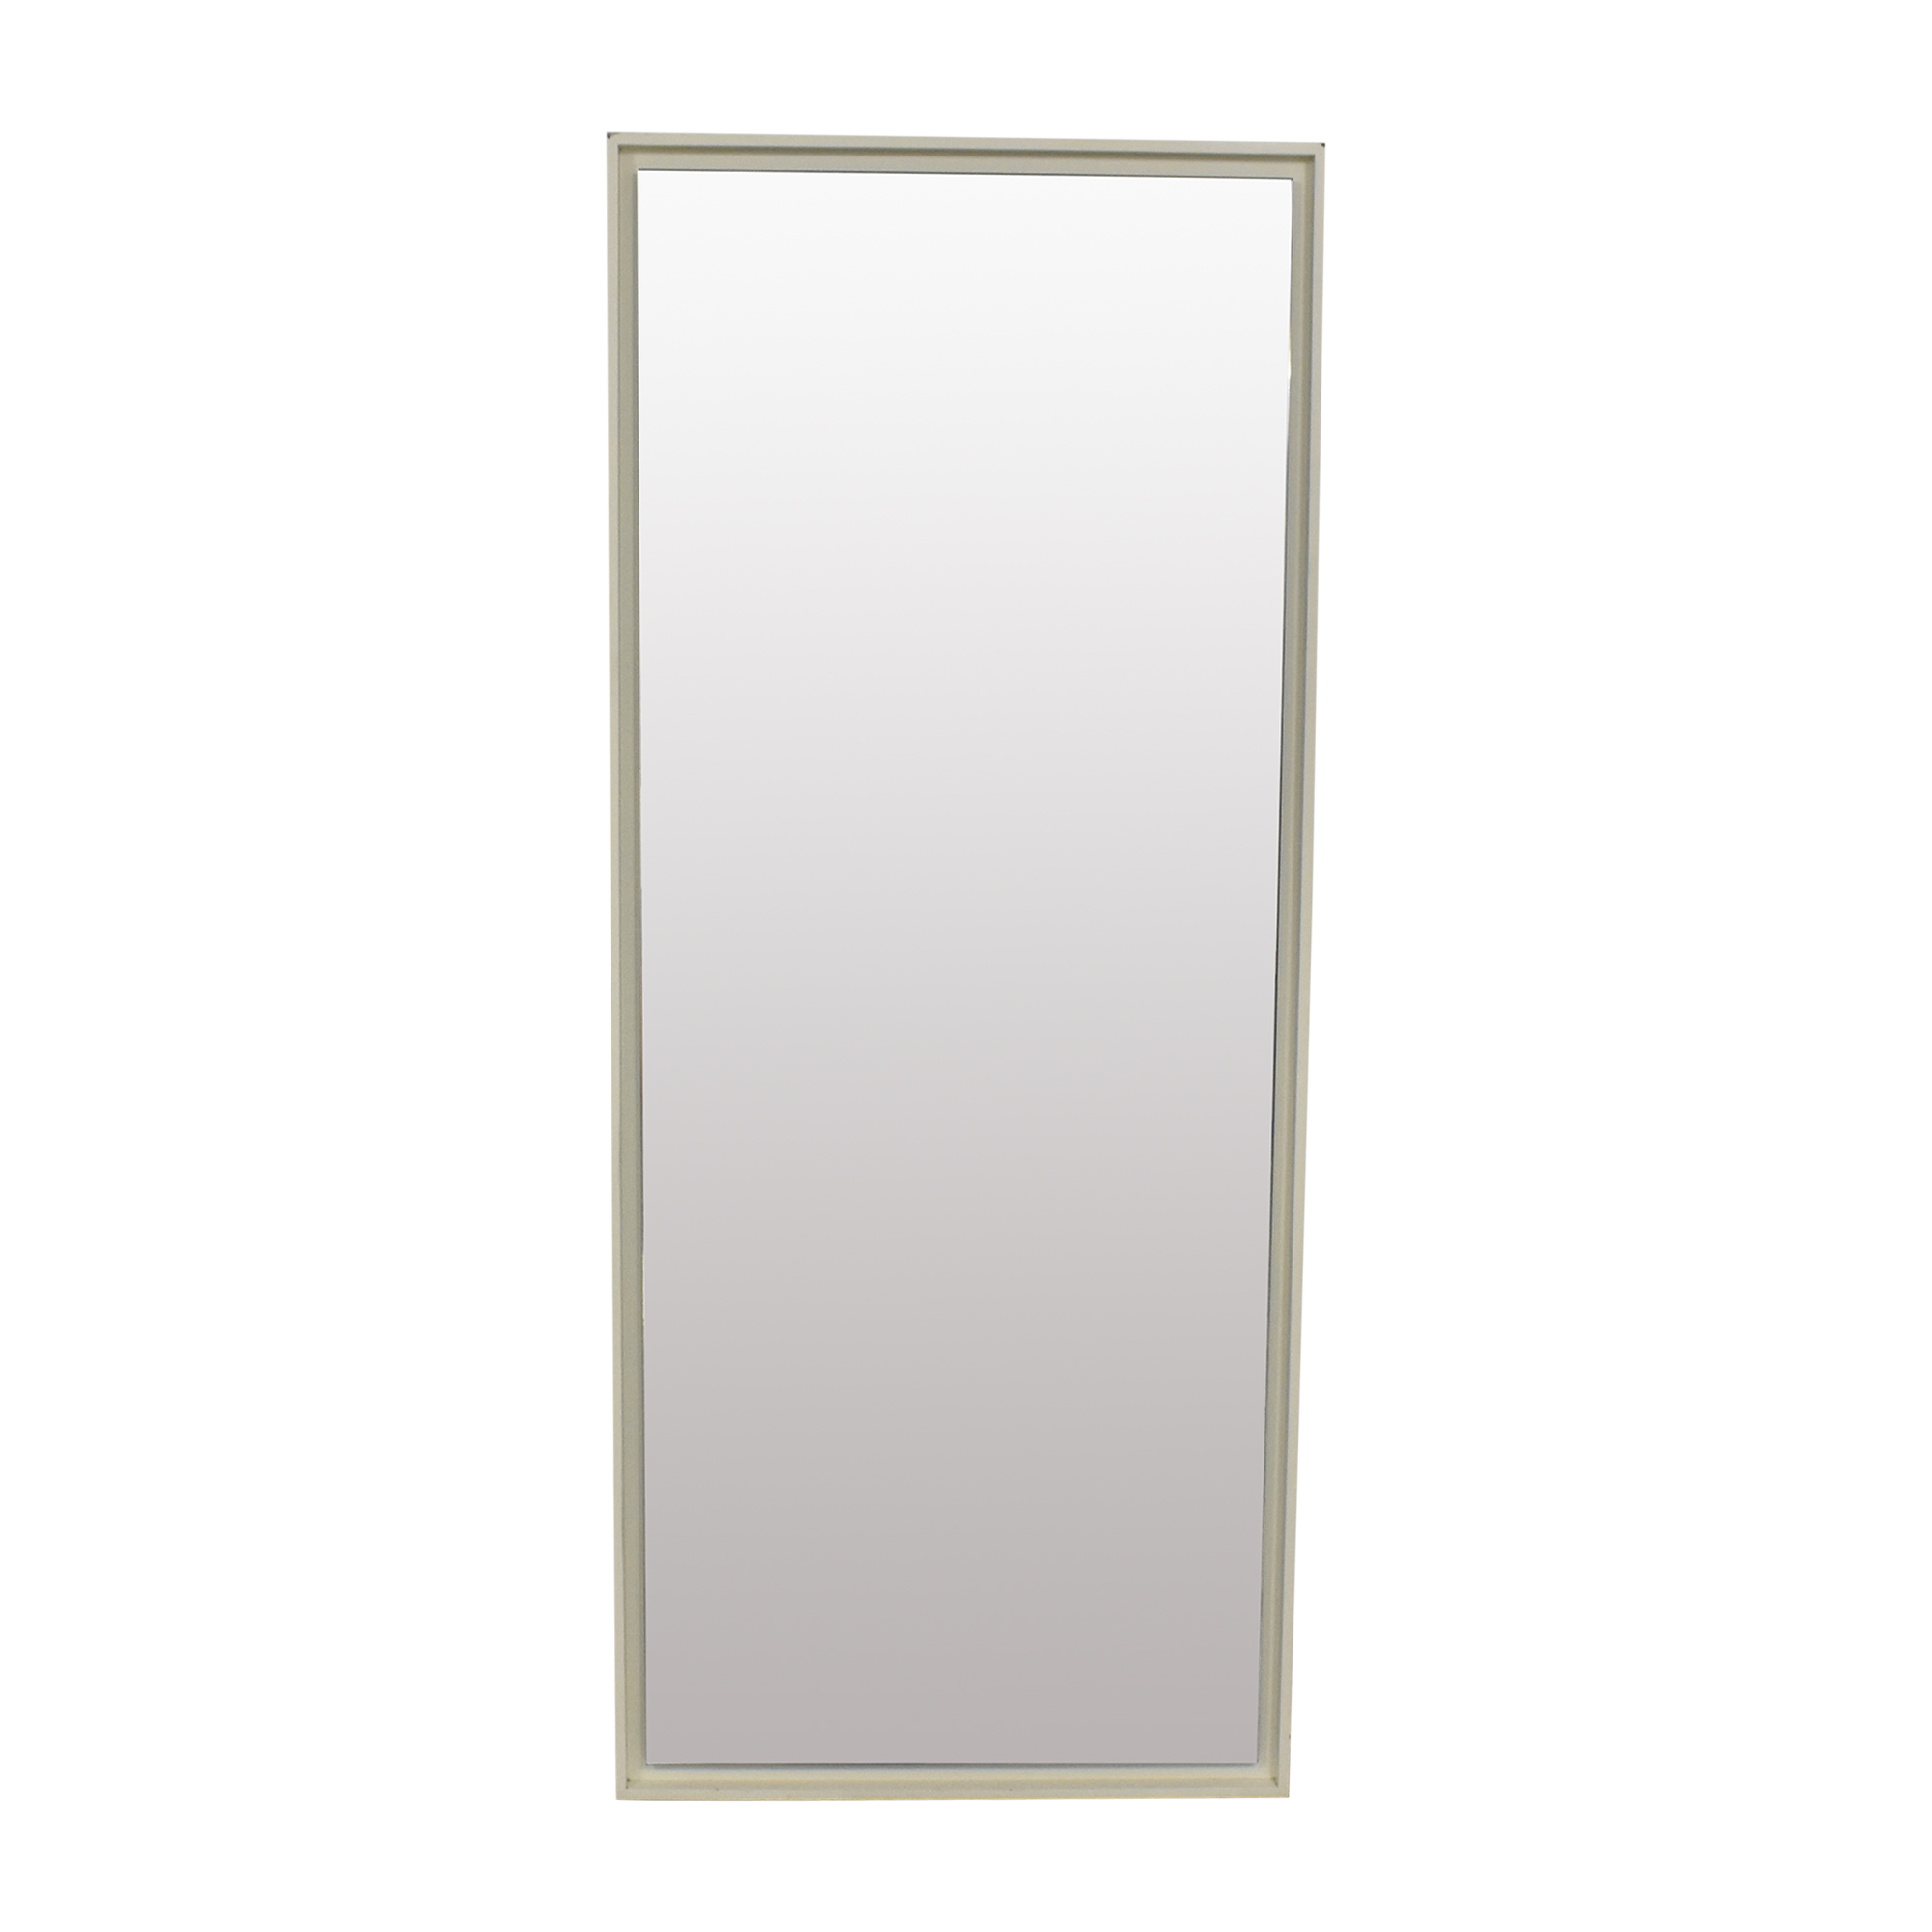 West Elm West Elm Floating Wood Floor Mirror price